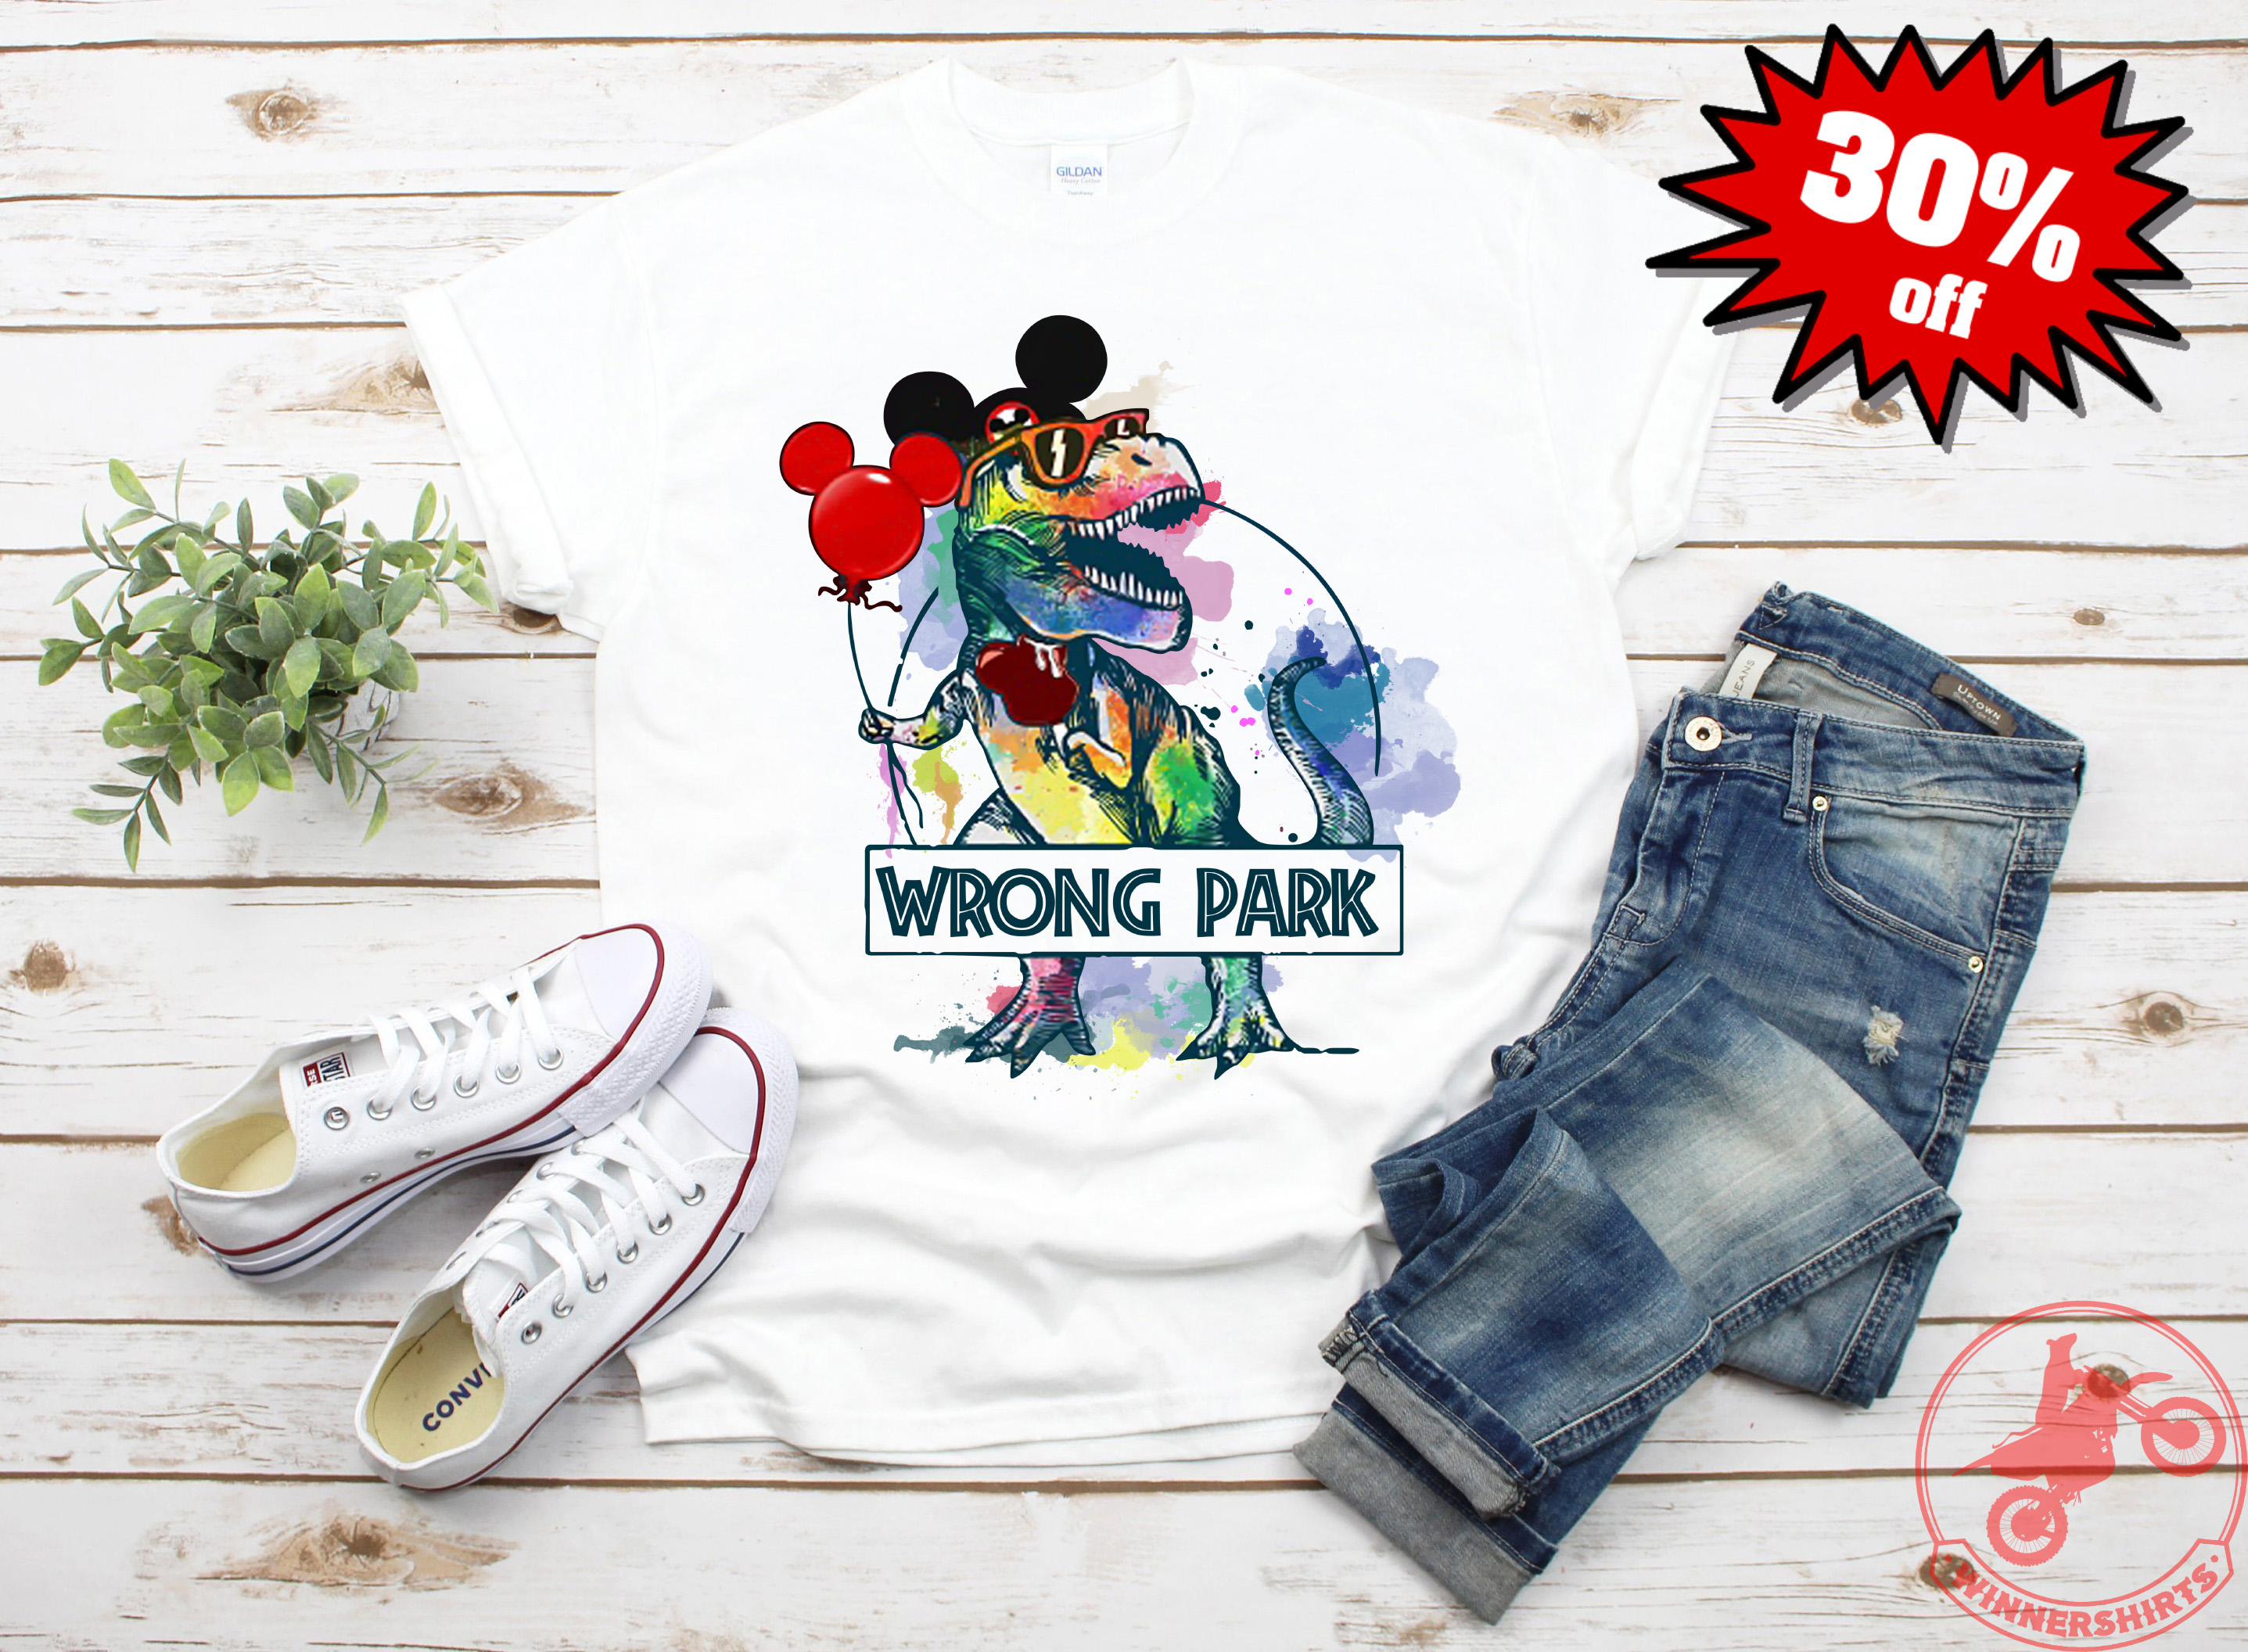 b94d28adf T-rex Dinosaur Mickey mouse holding balloon wrong park shirt or hoodie